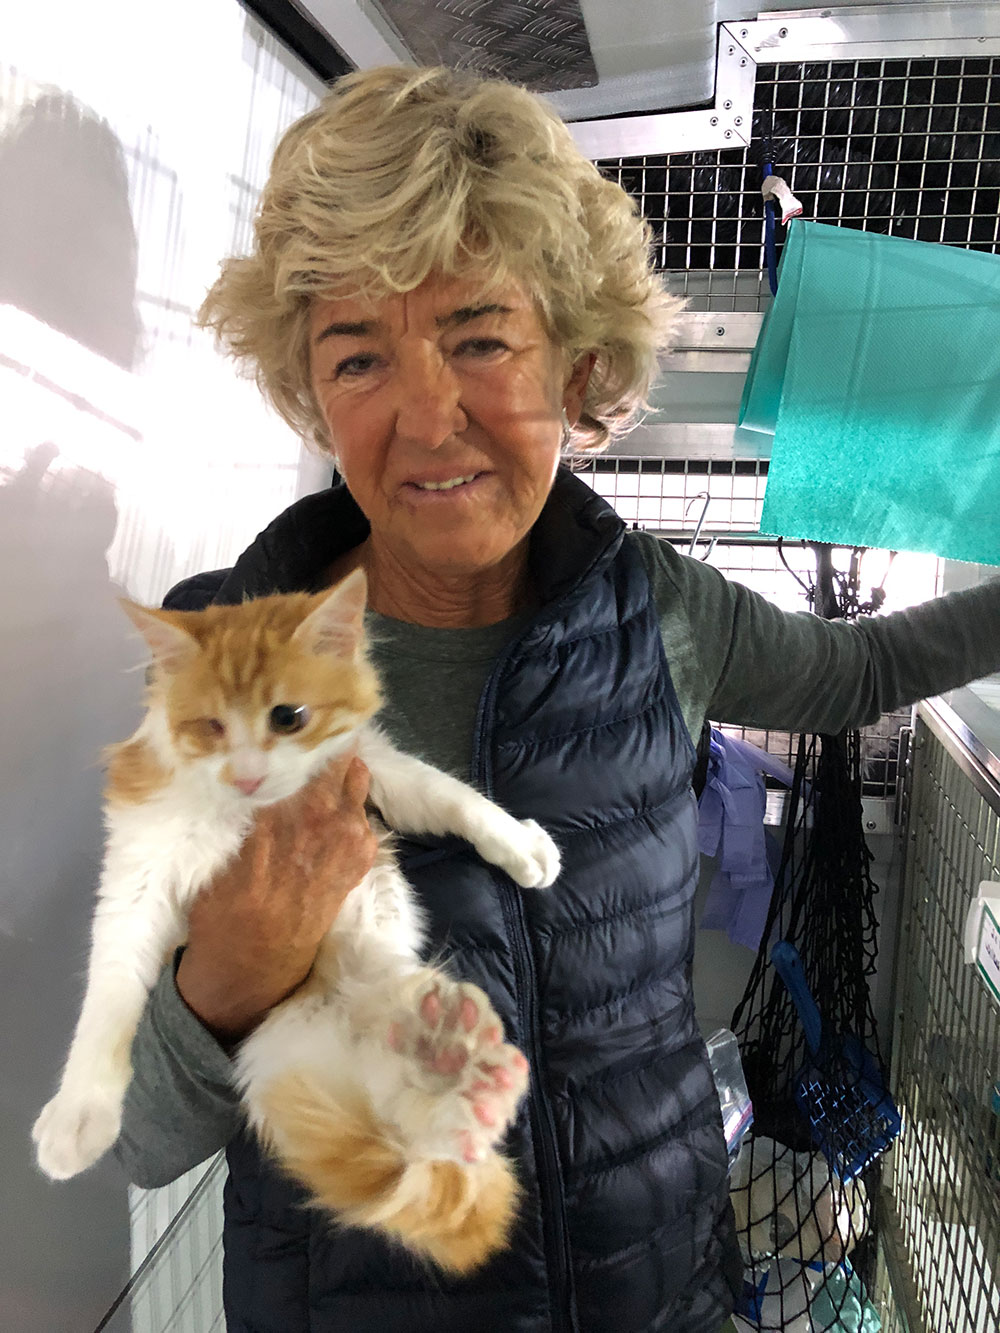 Sandra has been taking super care of Luna until she was fit and ready to travel to the UK. She's so pleased that Luna has a loving home to go to.